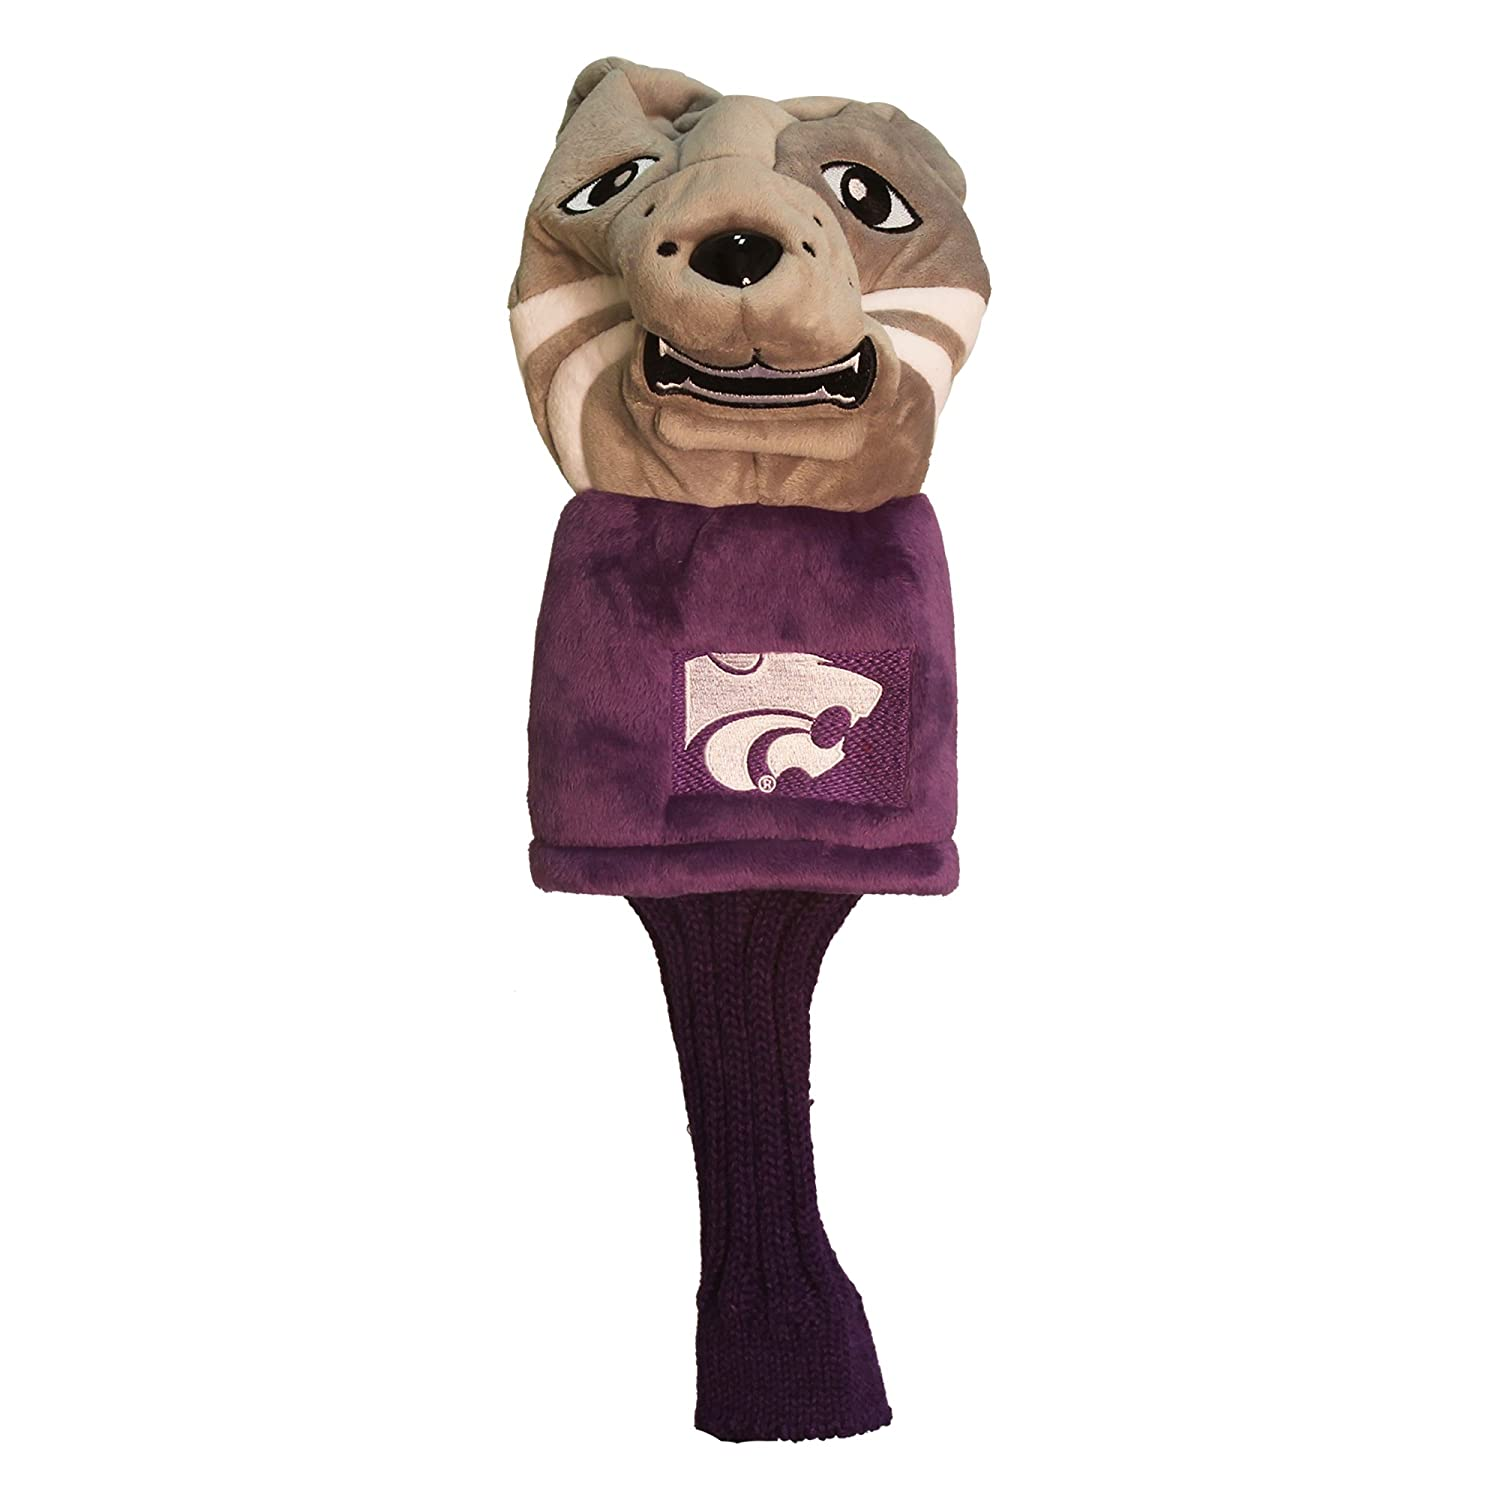 Amazon.com: Team Golf NCAA Mascot Golf Club Headcover, se ...